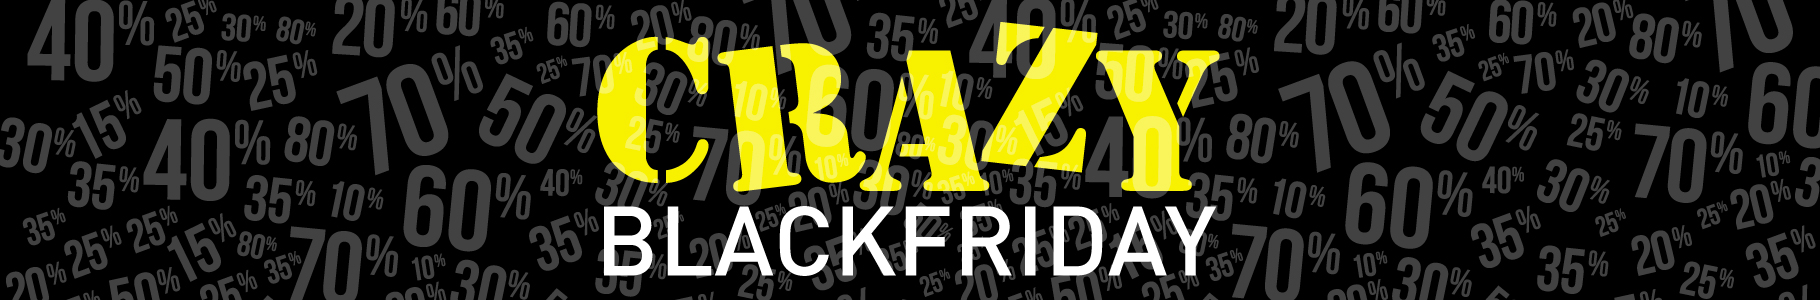 BlackFriday - crazyprices